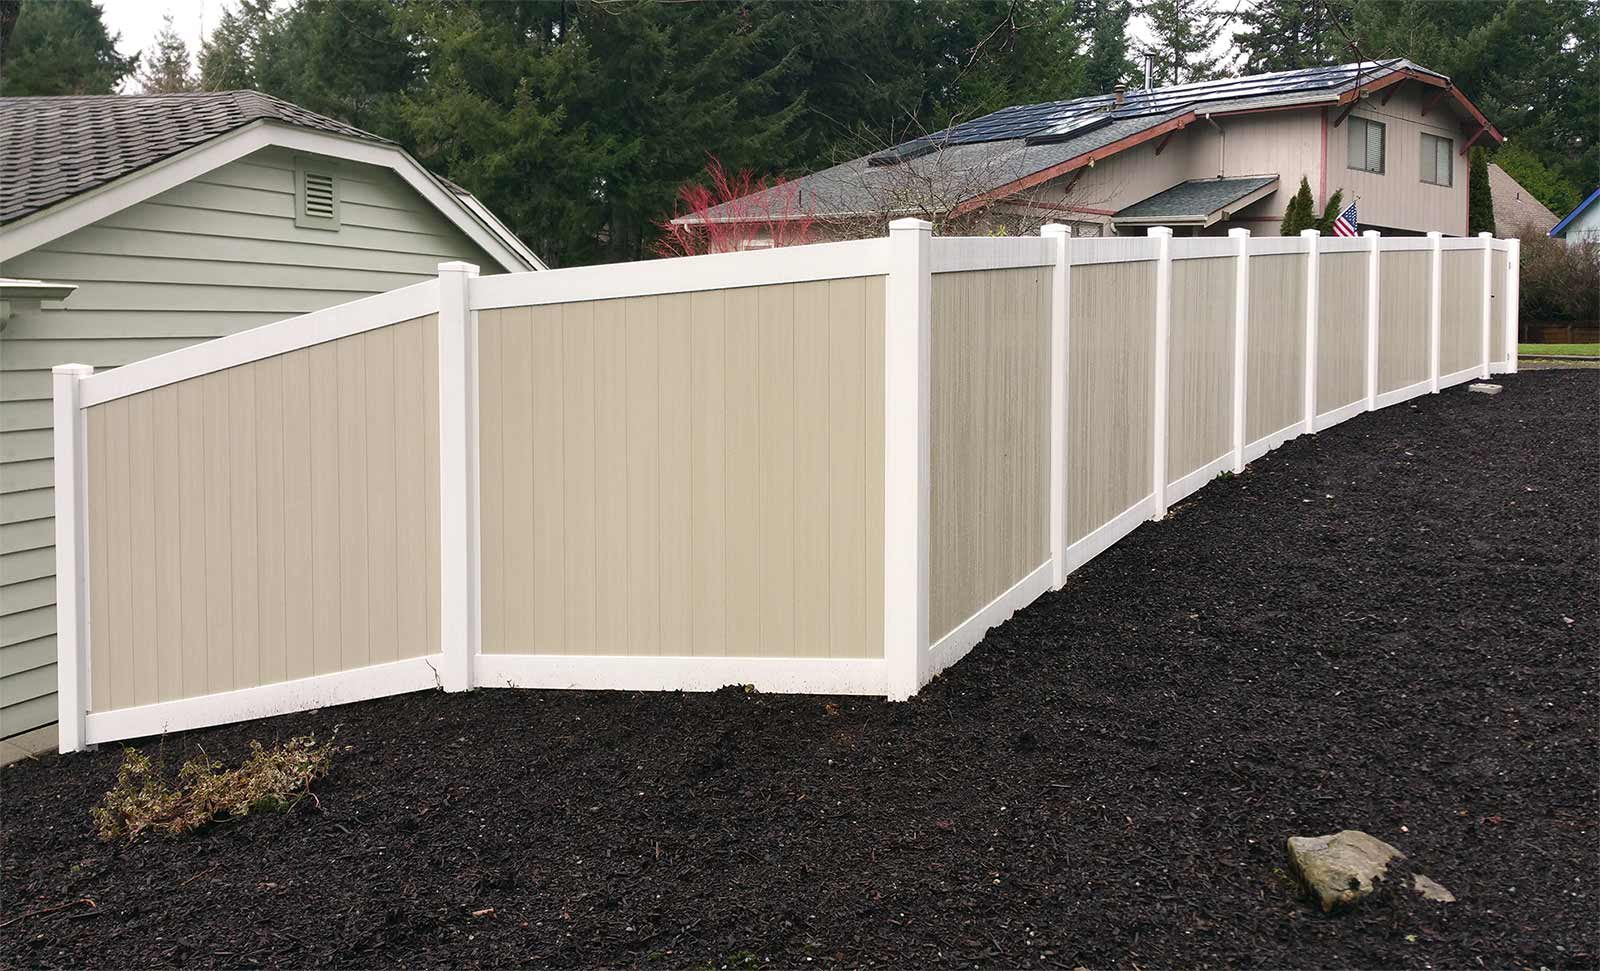 Tiered retaining wall with vinyl fencing in west olympia ajb new vinyl fence new vinyl fence baanklon Image collections